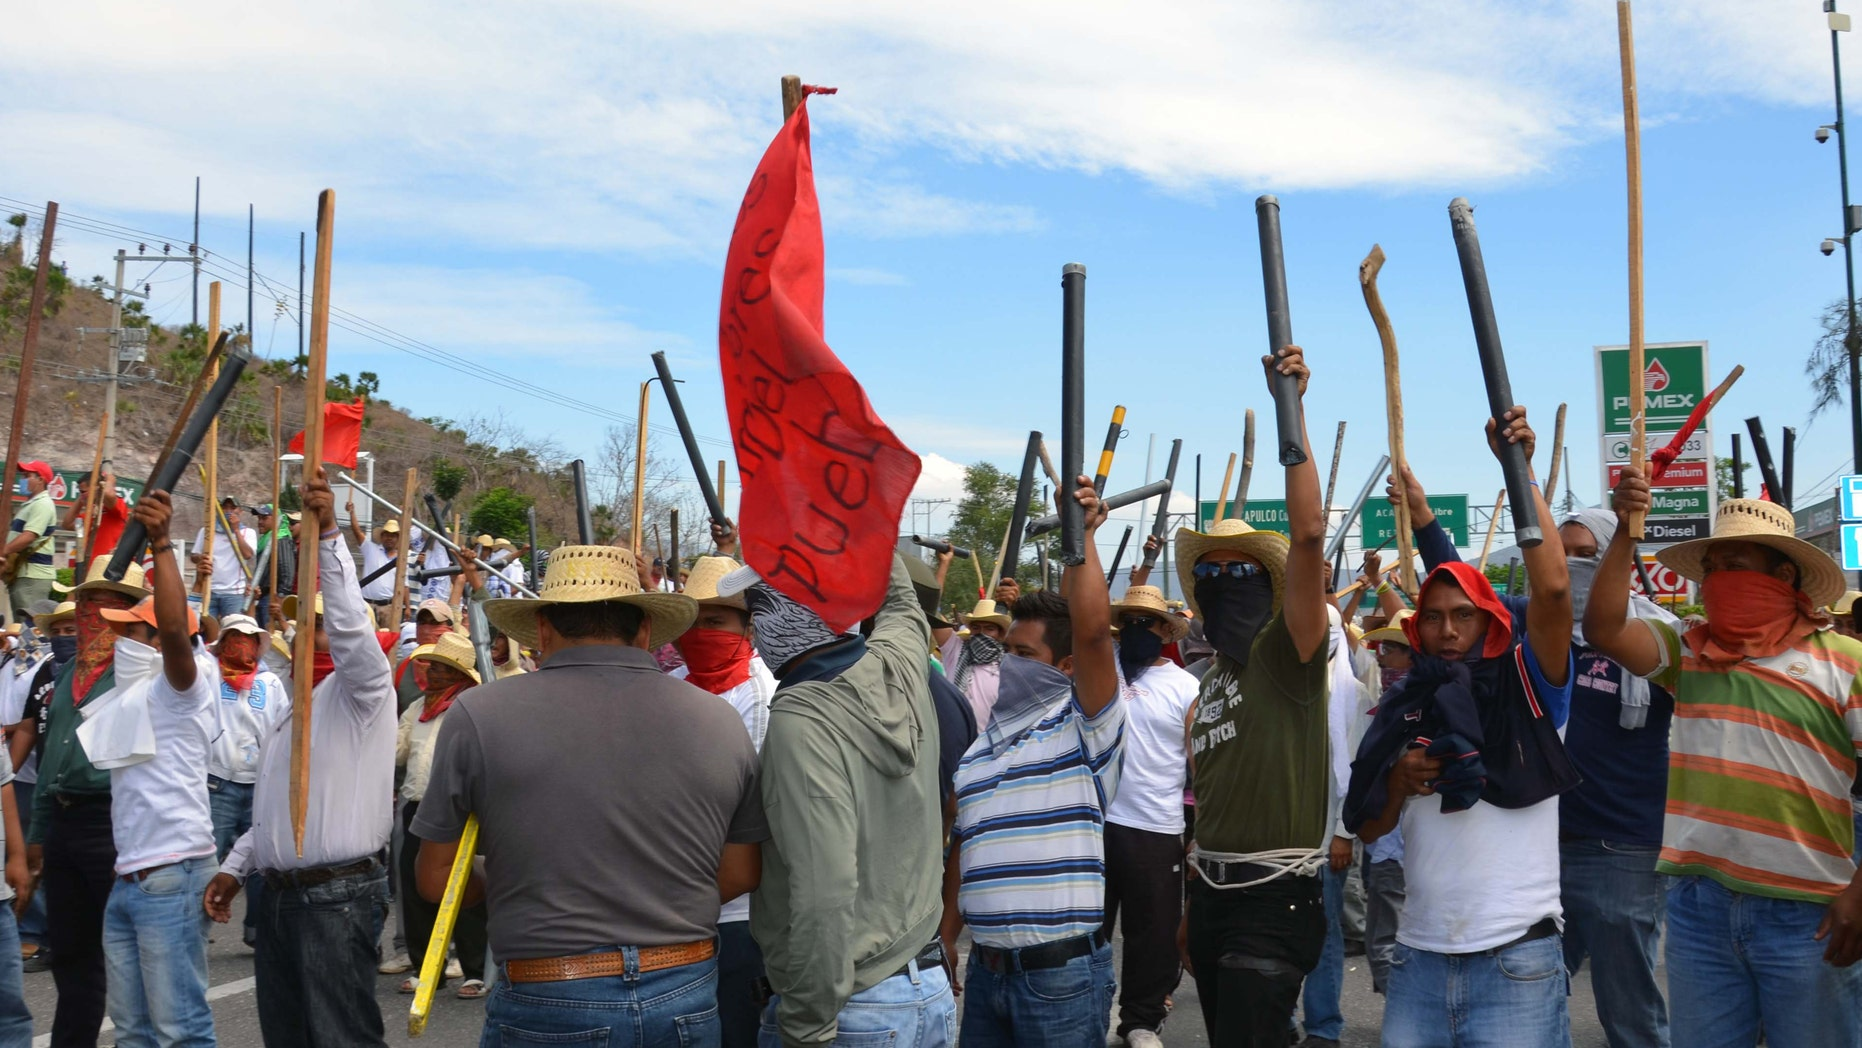 Teachers chant slogans holding up metal pipes and wooden sticks while blocking a major highway in Chilpancingo, Mexico, Thursday, April 11, 2013. (AP Photo/Alejandrino Gonzalez)